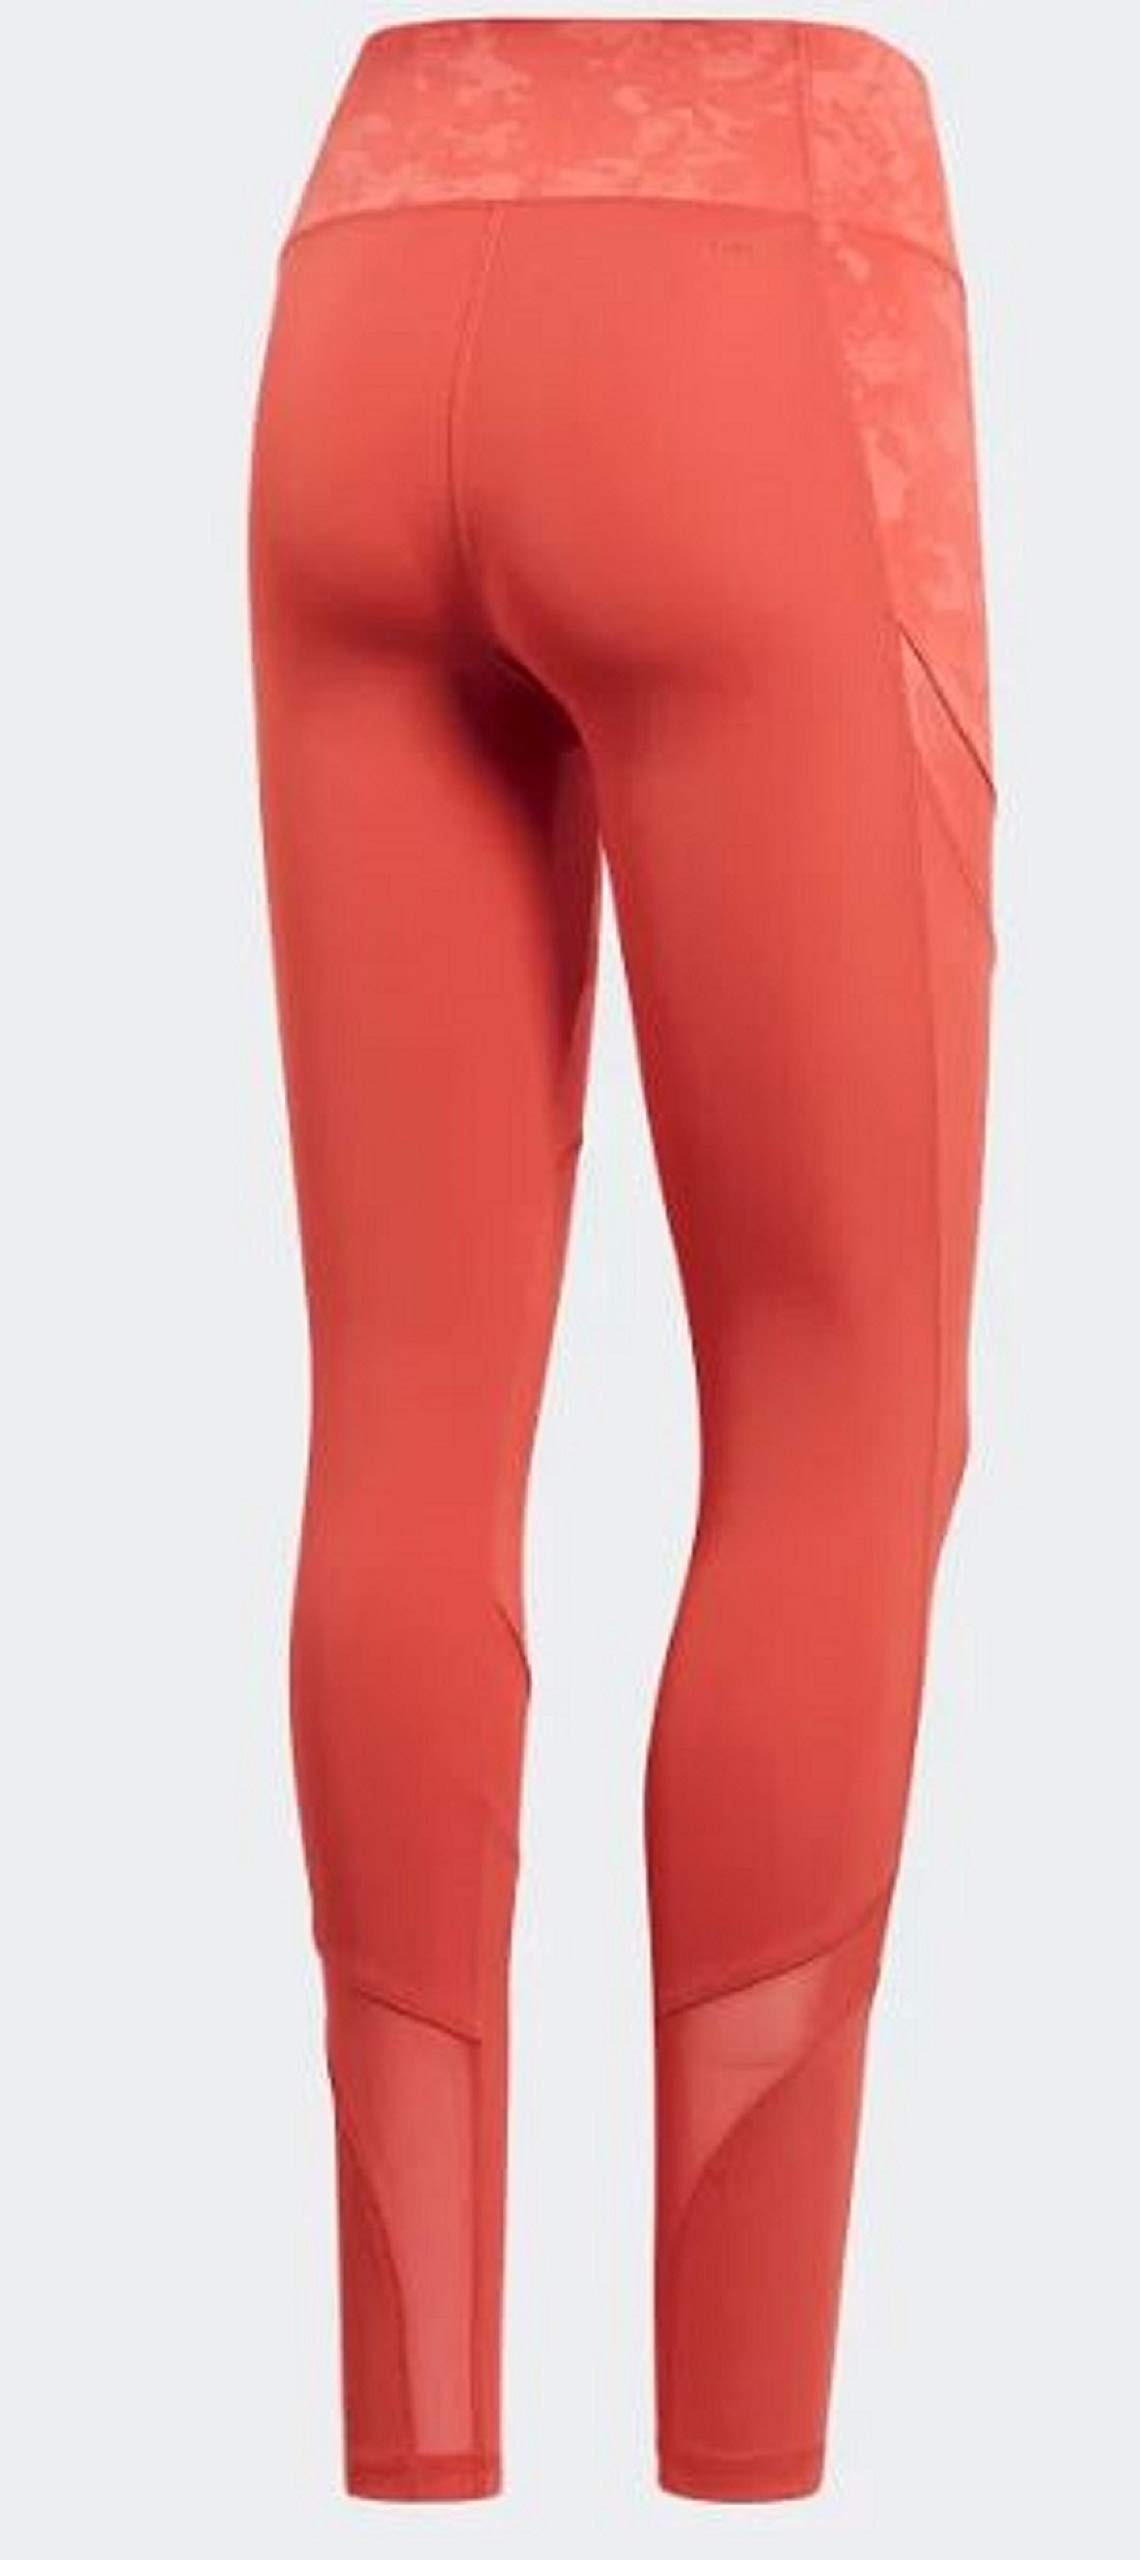 adidas Women's Climalite Ultimate High Rise Printed Long Tights, Trace Scarlet/Print, Small by adidas (Image #7)